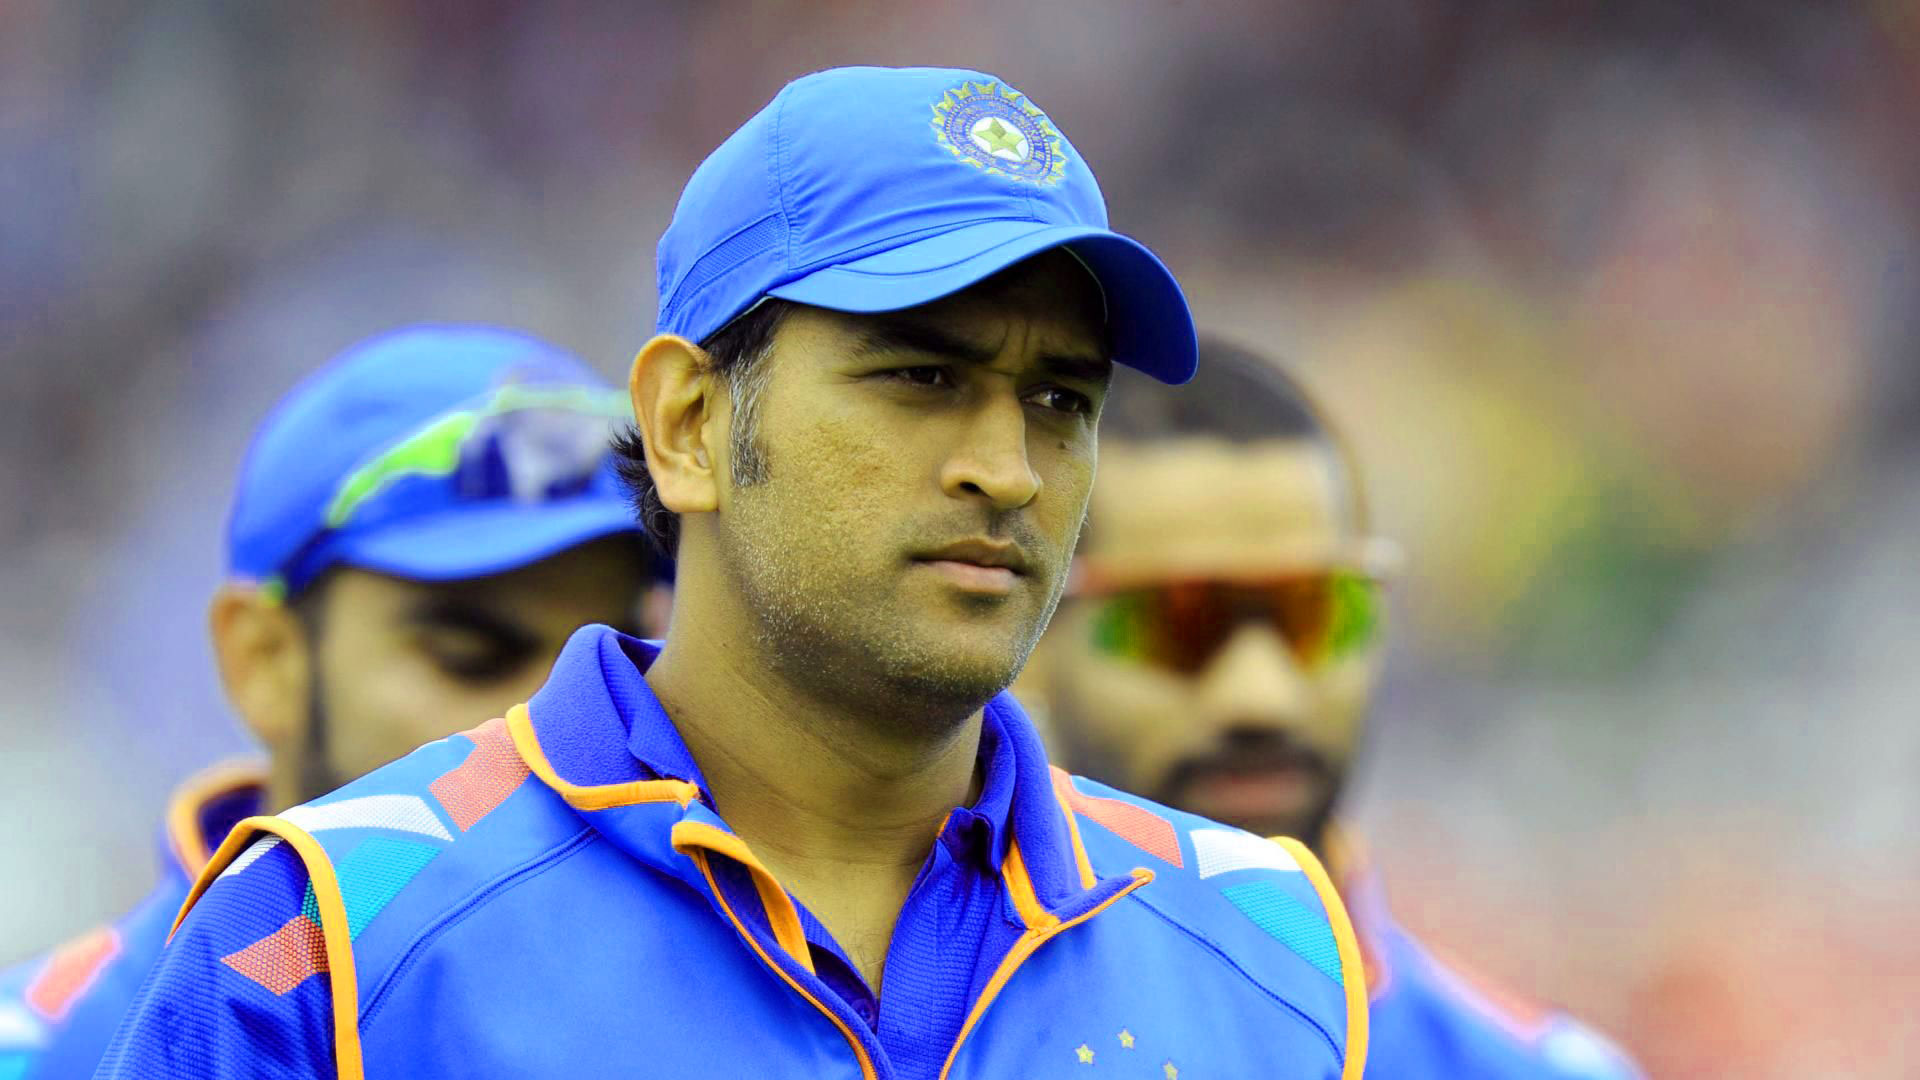 INDIAN CRICKET TEAM PLAYER IMAGES PHOTO PICS FREE HD